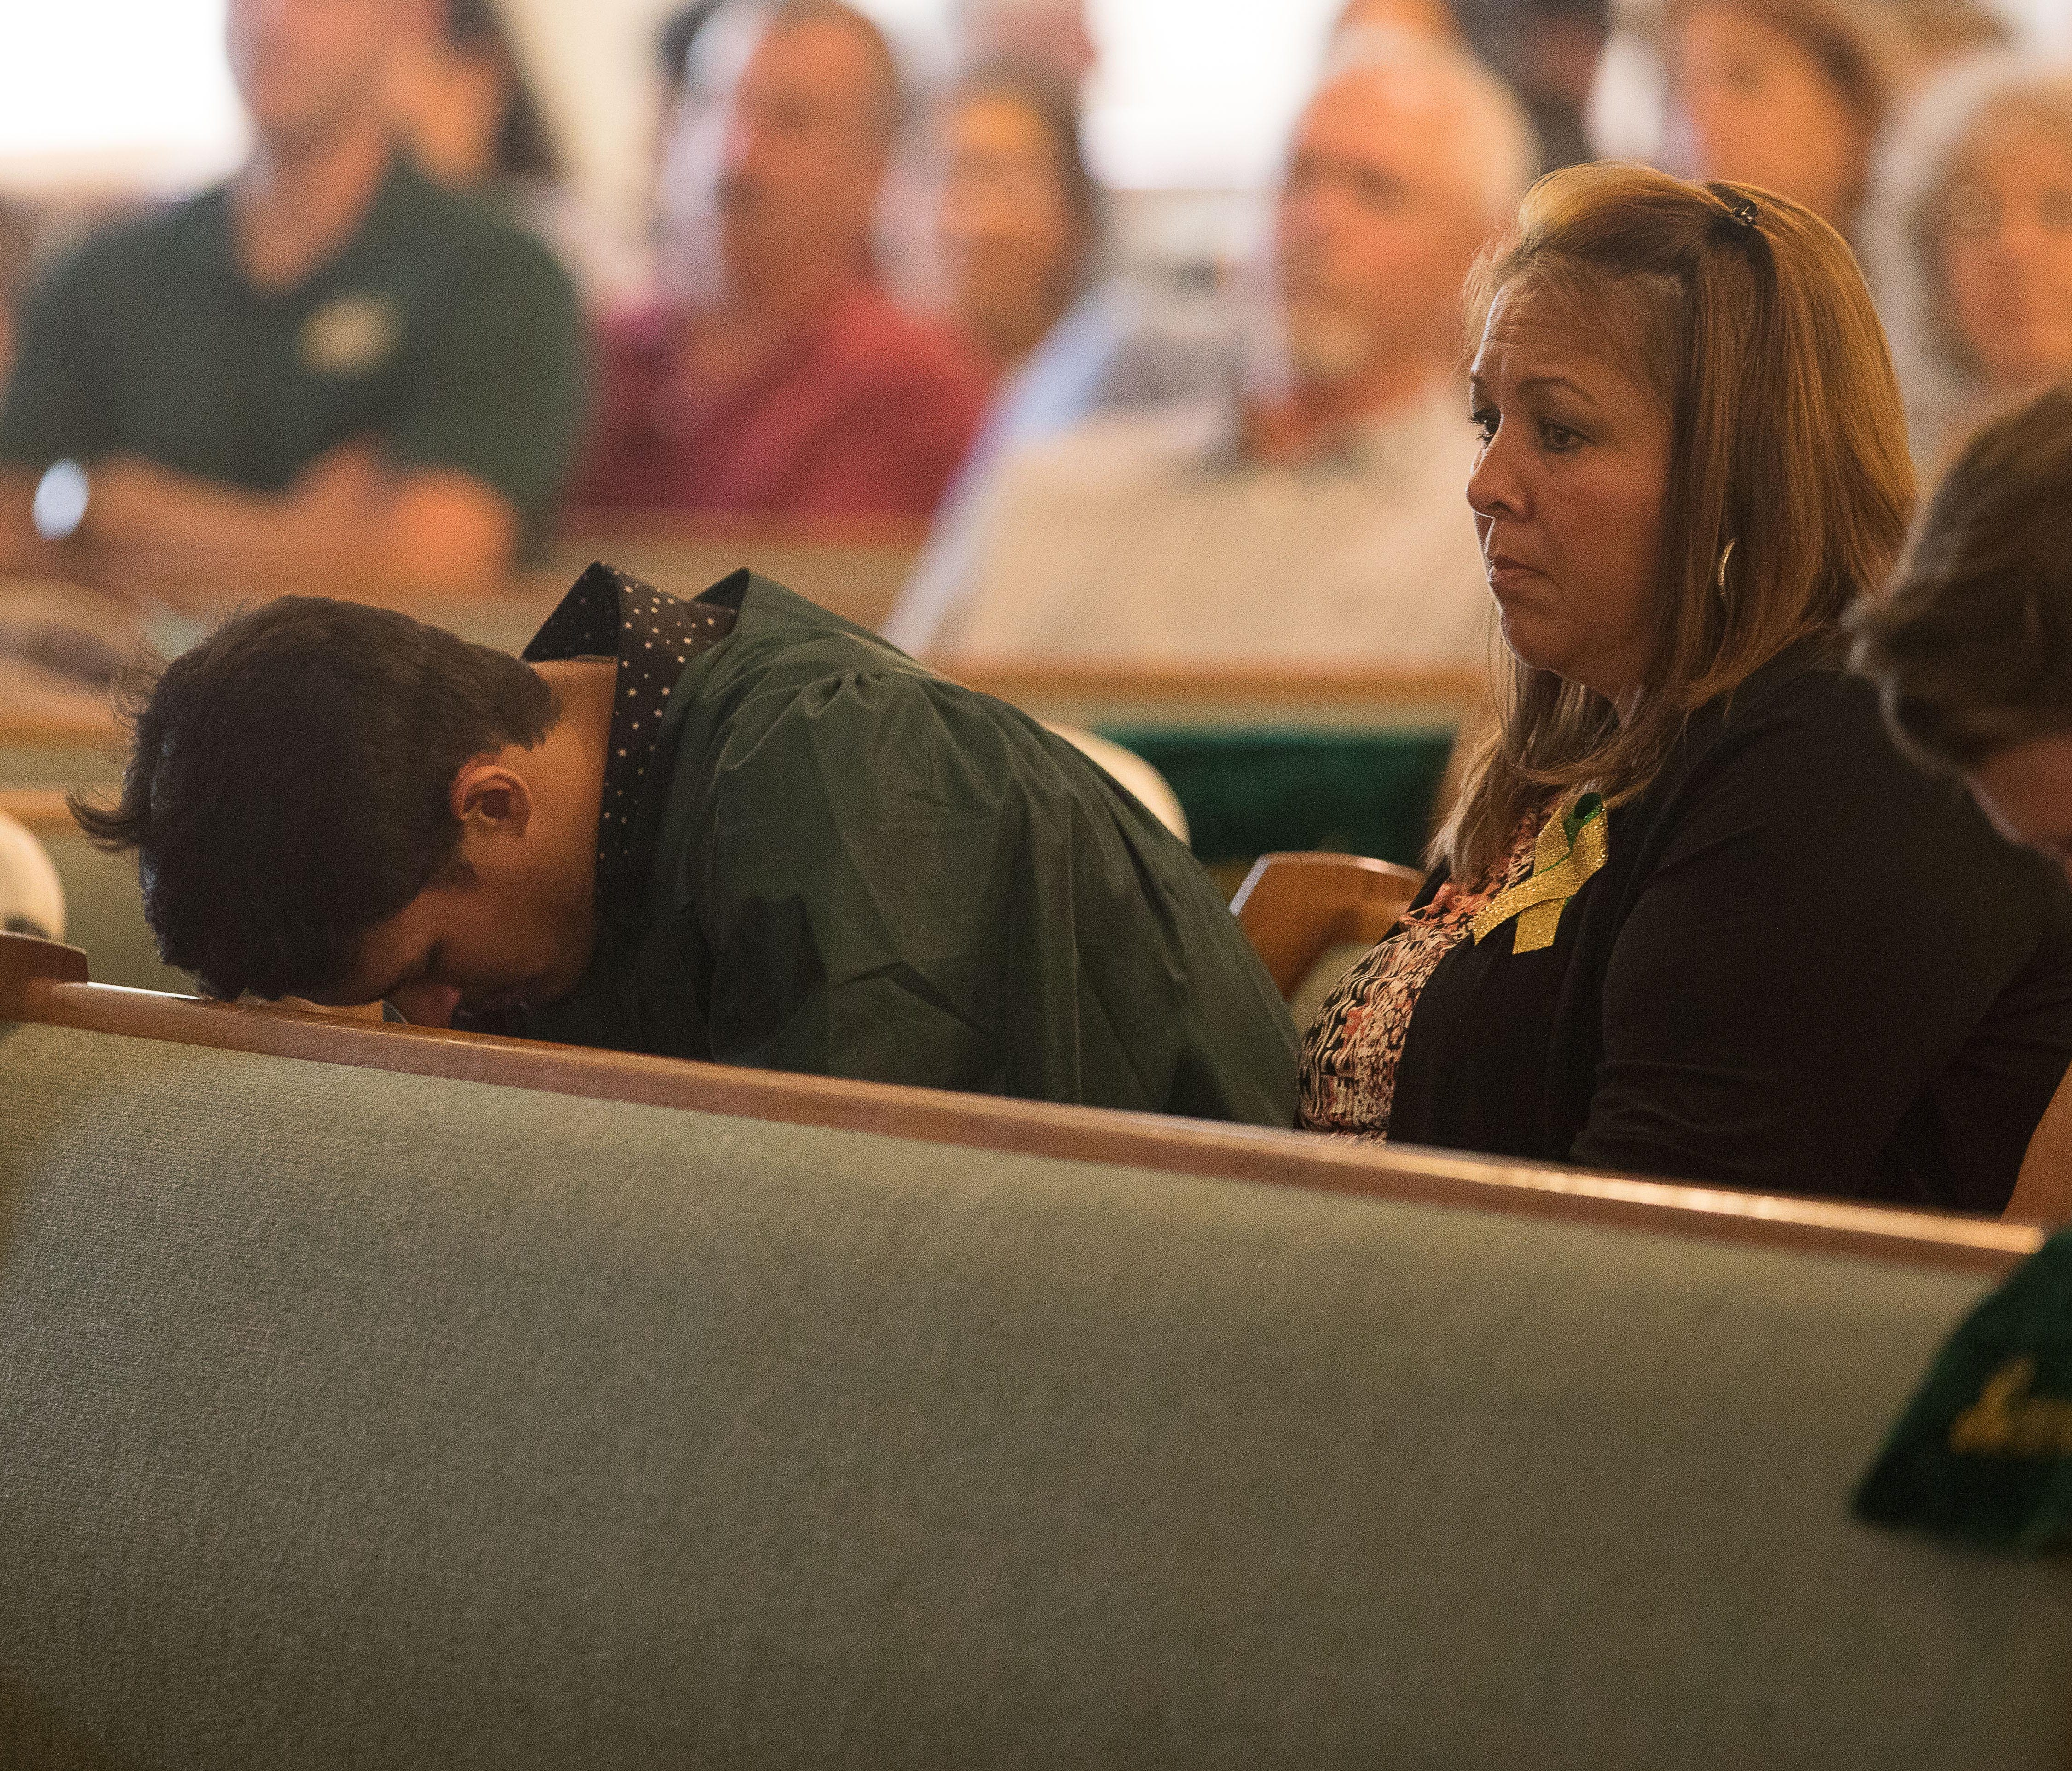 A Santa Fe High School senior becomes emotional during a service at Arcadia First Baptist Church in Santa Fe, Texas on May 20, 2018.